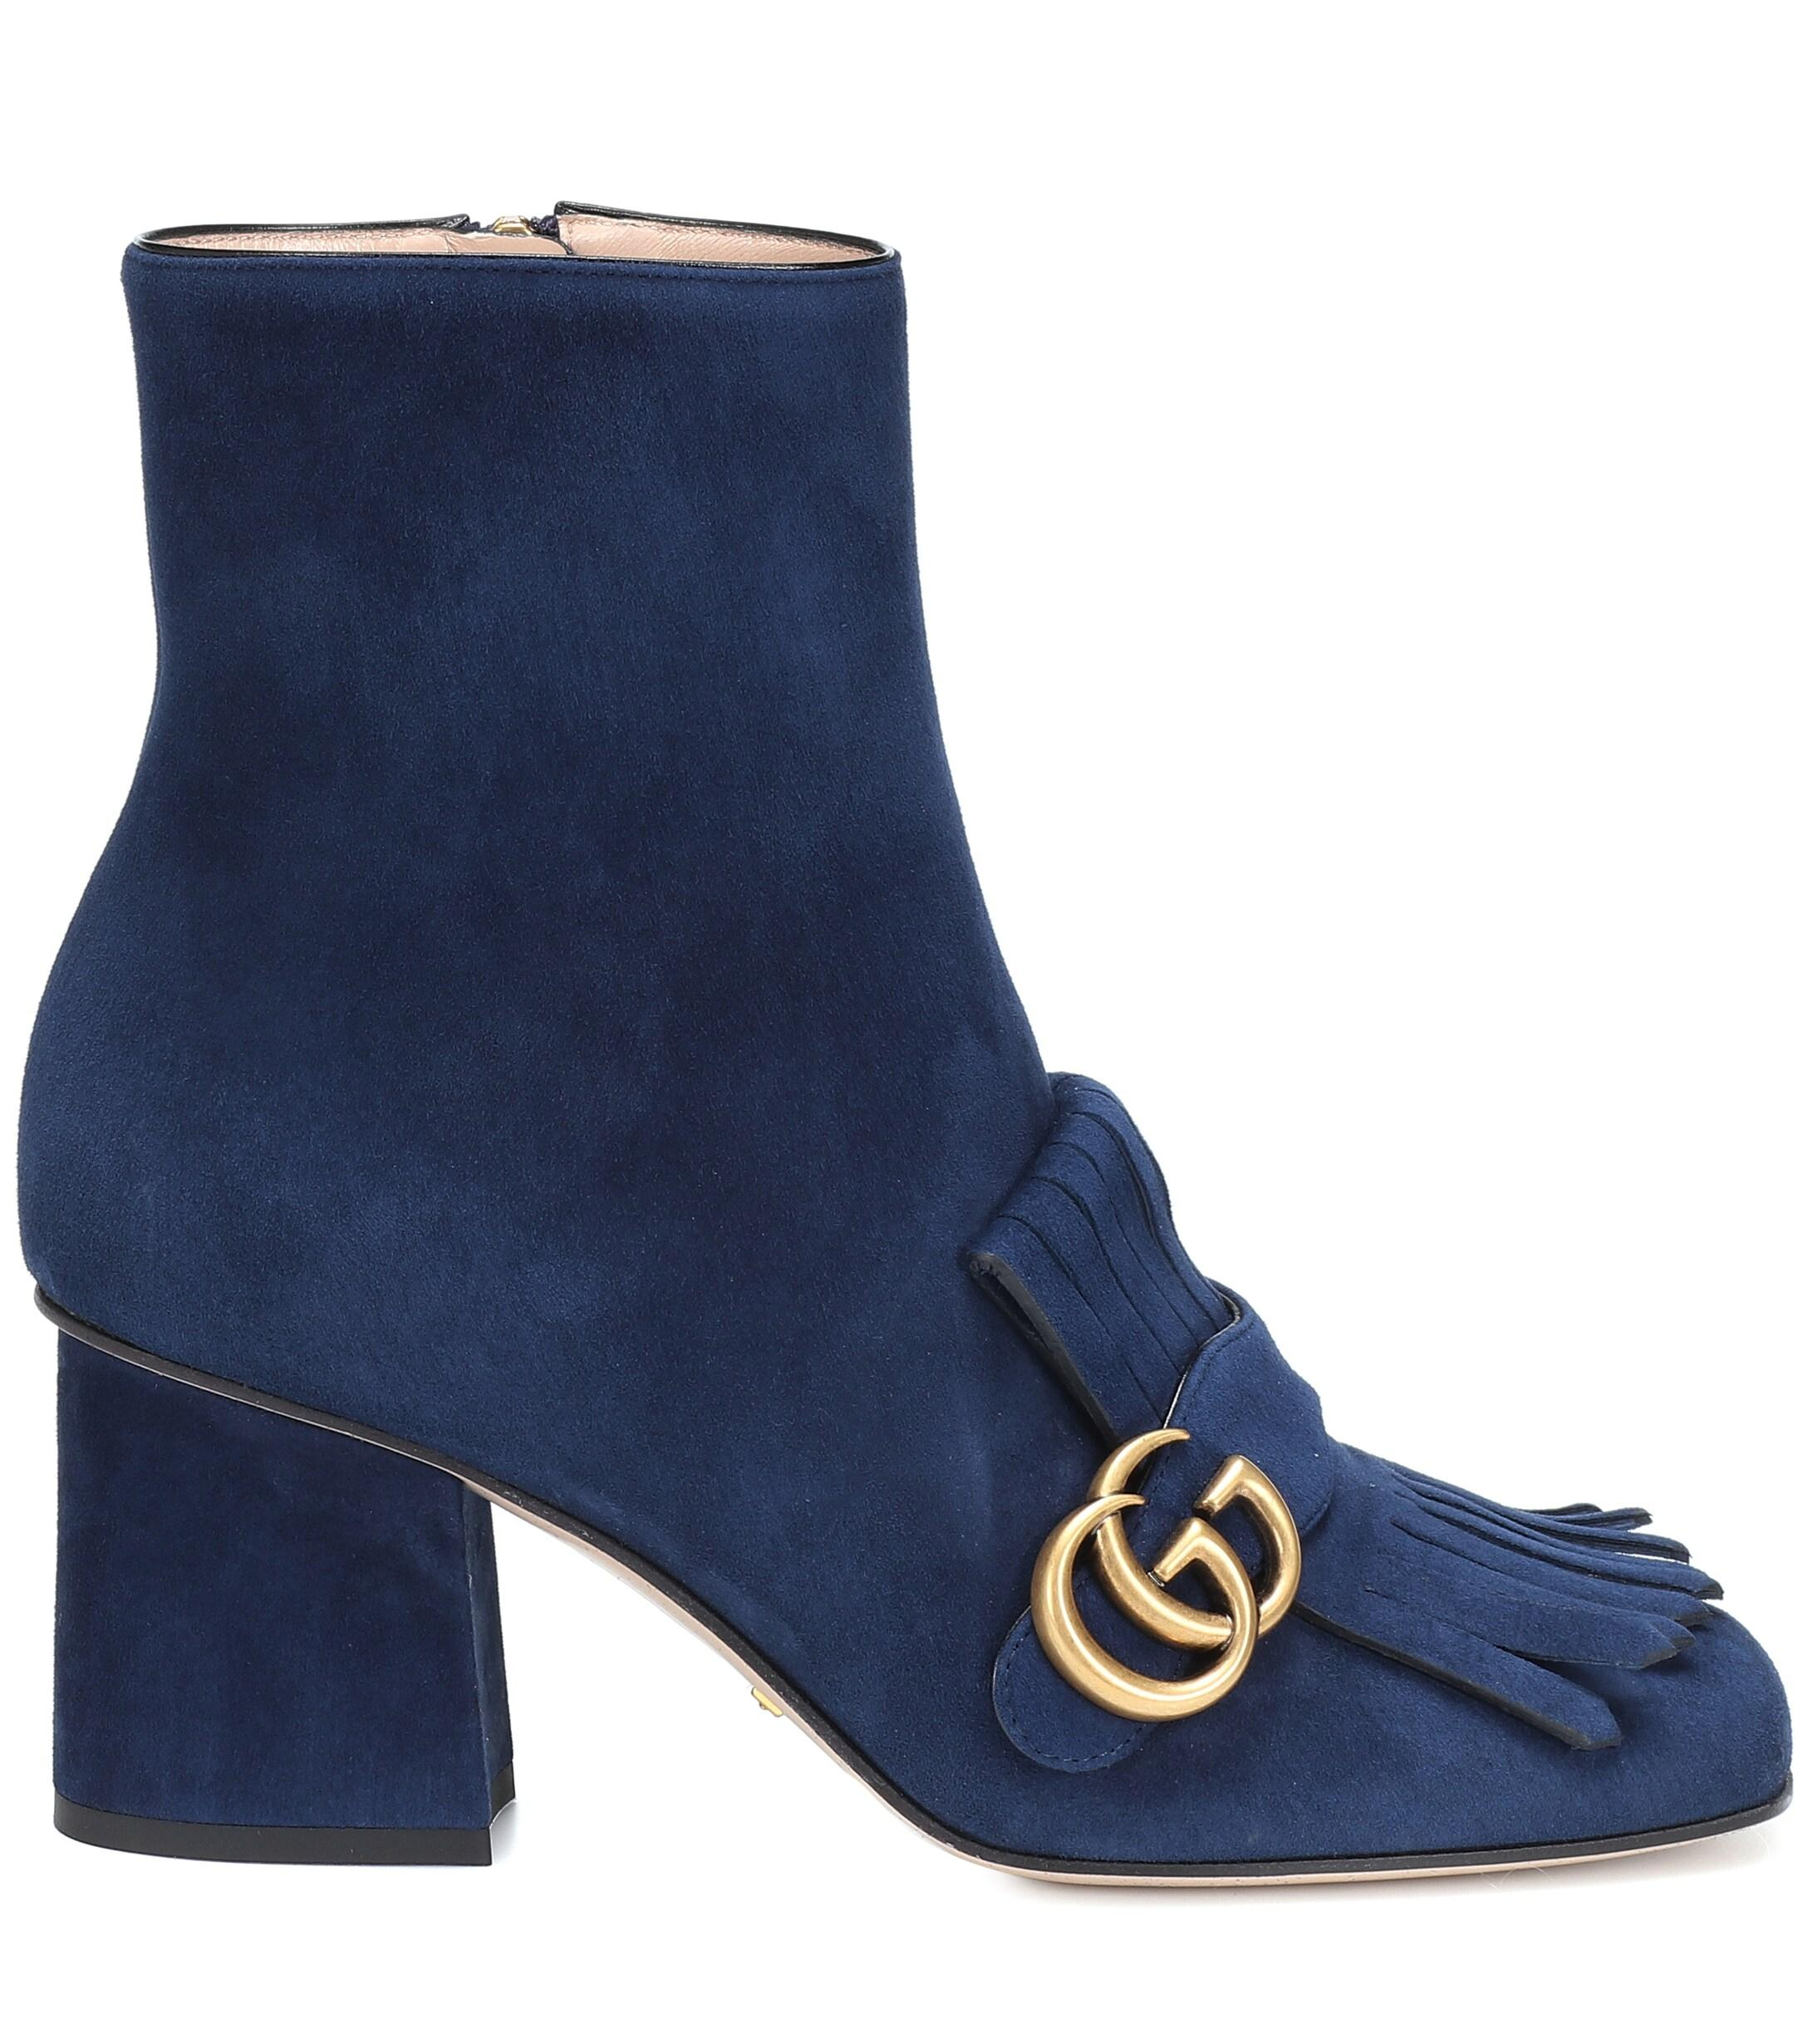 Gucci Marmot Suede Ankle Boots in Blue